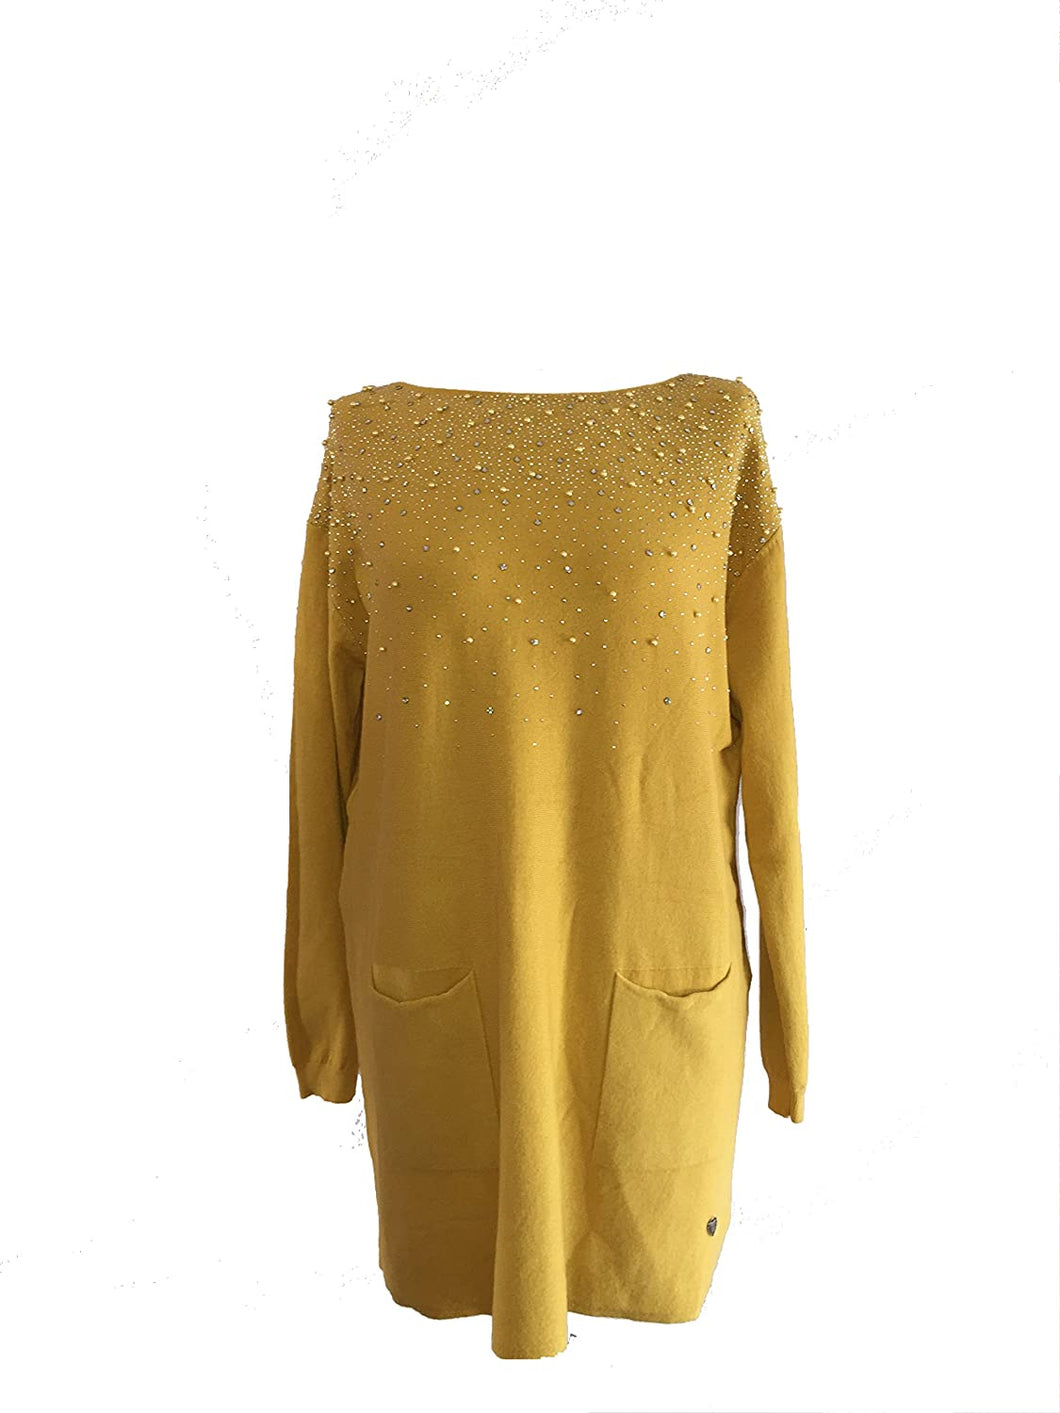 Pamper Yourself Now ltd Mustard Soft Tunic with Sequins and Pearls Jumper with Pockets. Made in Italy (AA31)